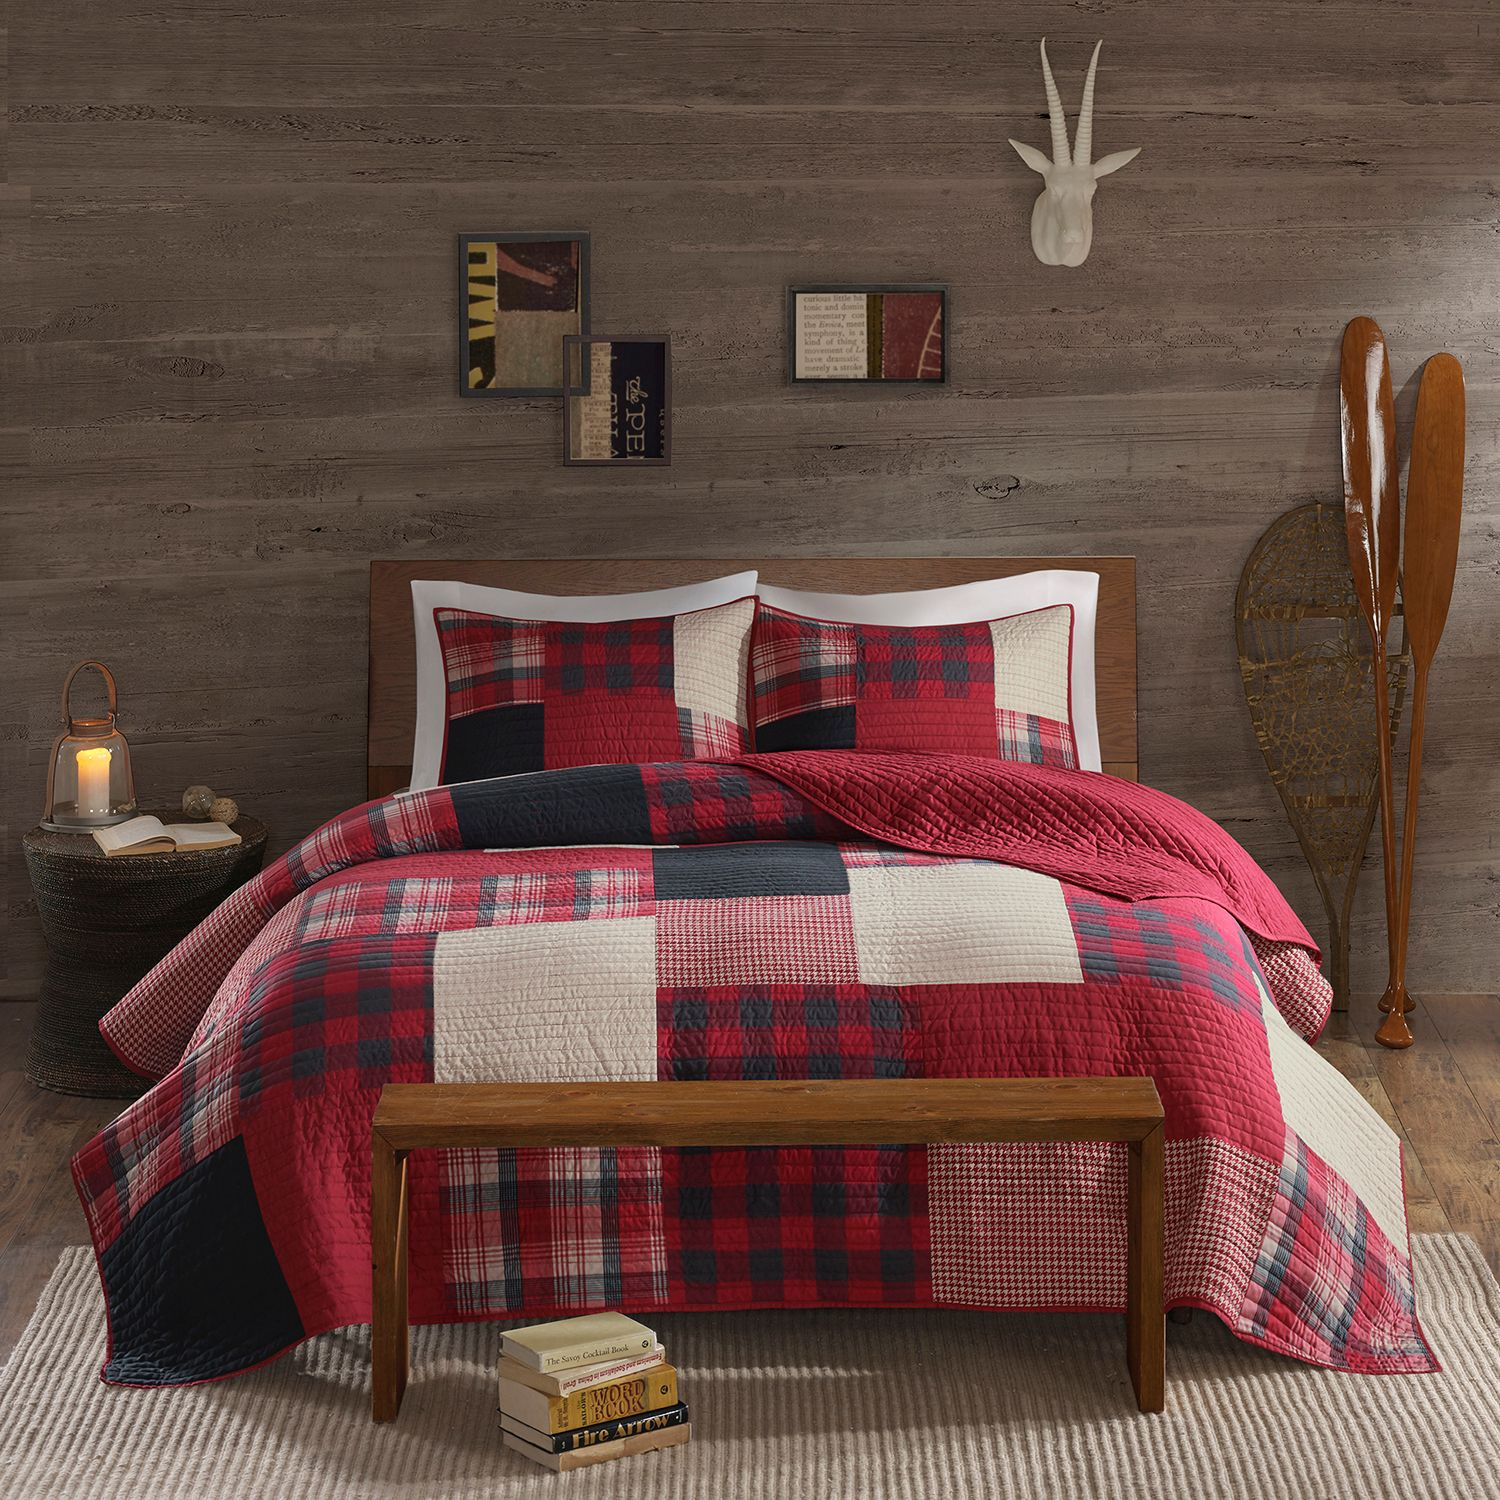 Rustic Bedding Find Bedding Sets For That Cabin Or Lodge Look Kohl S